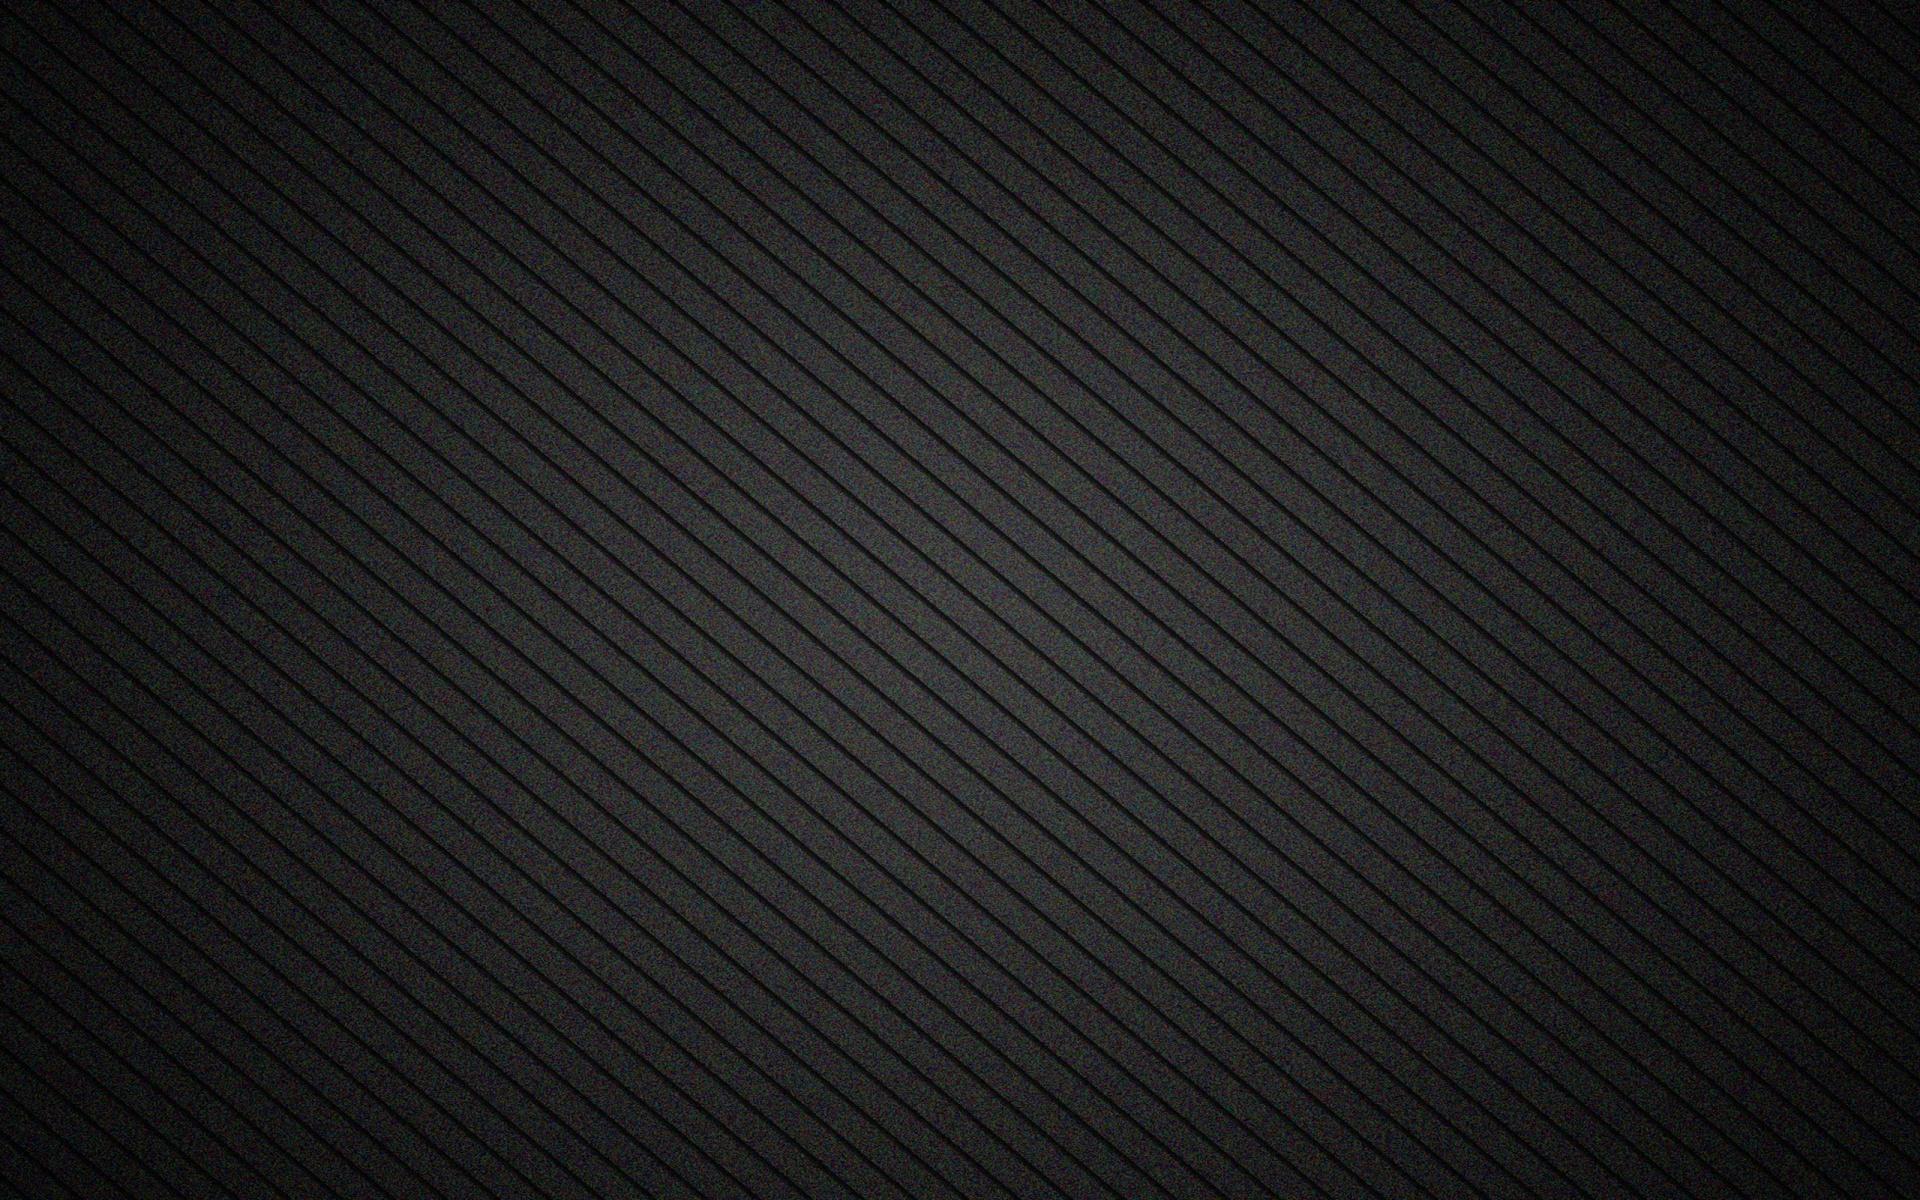 Black Wallpaper Design